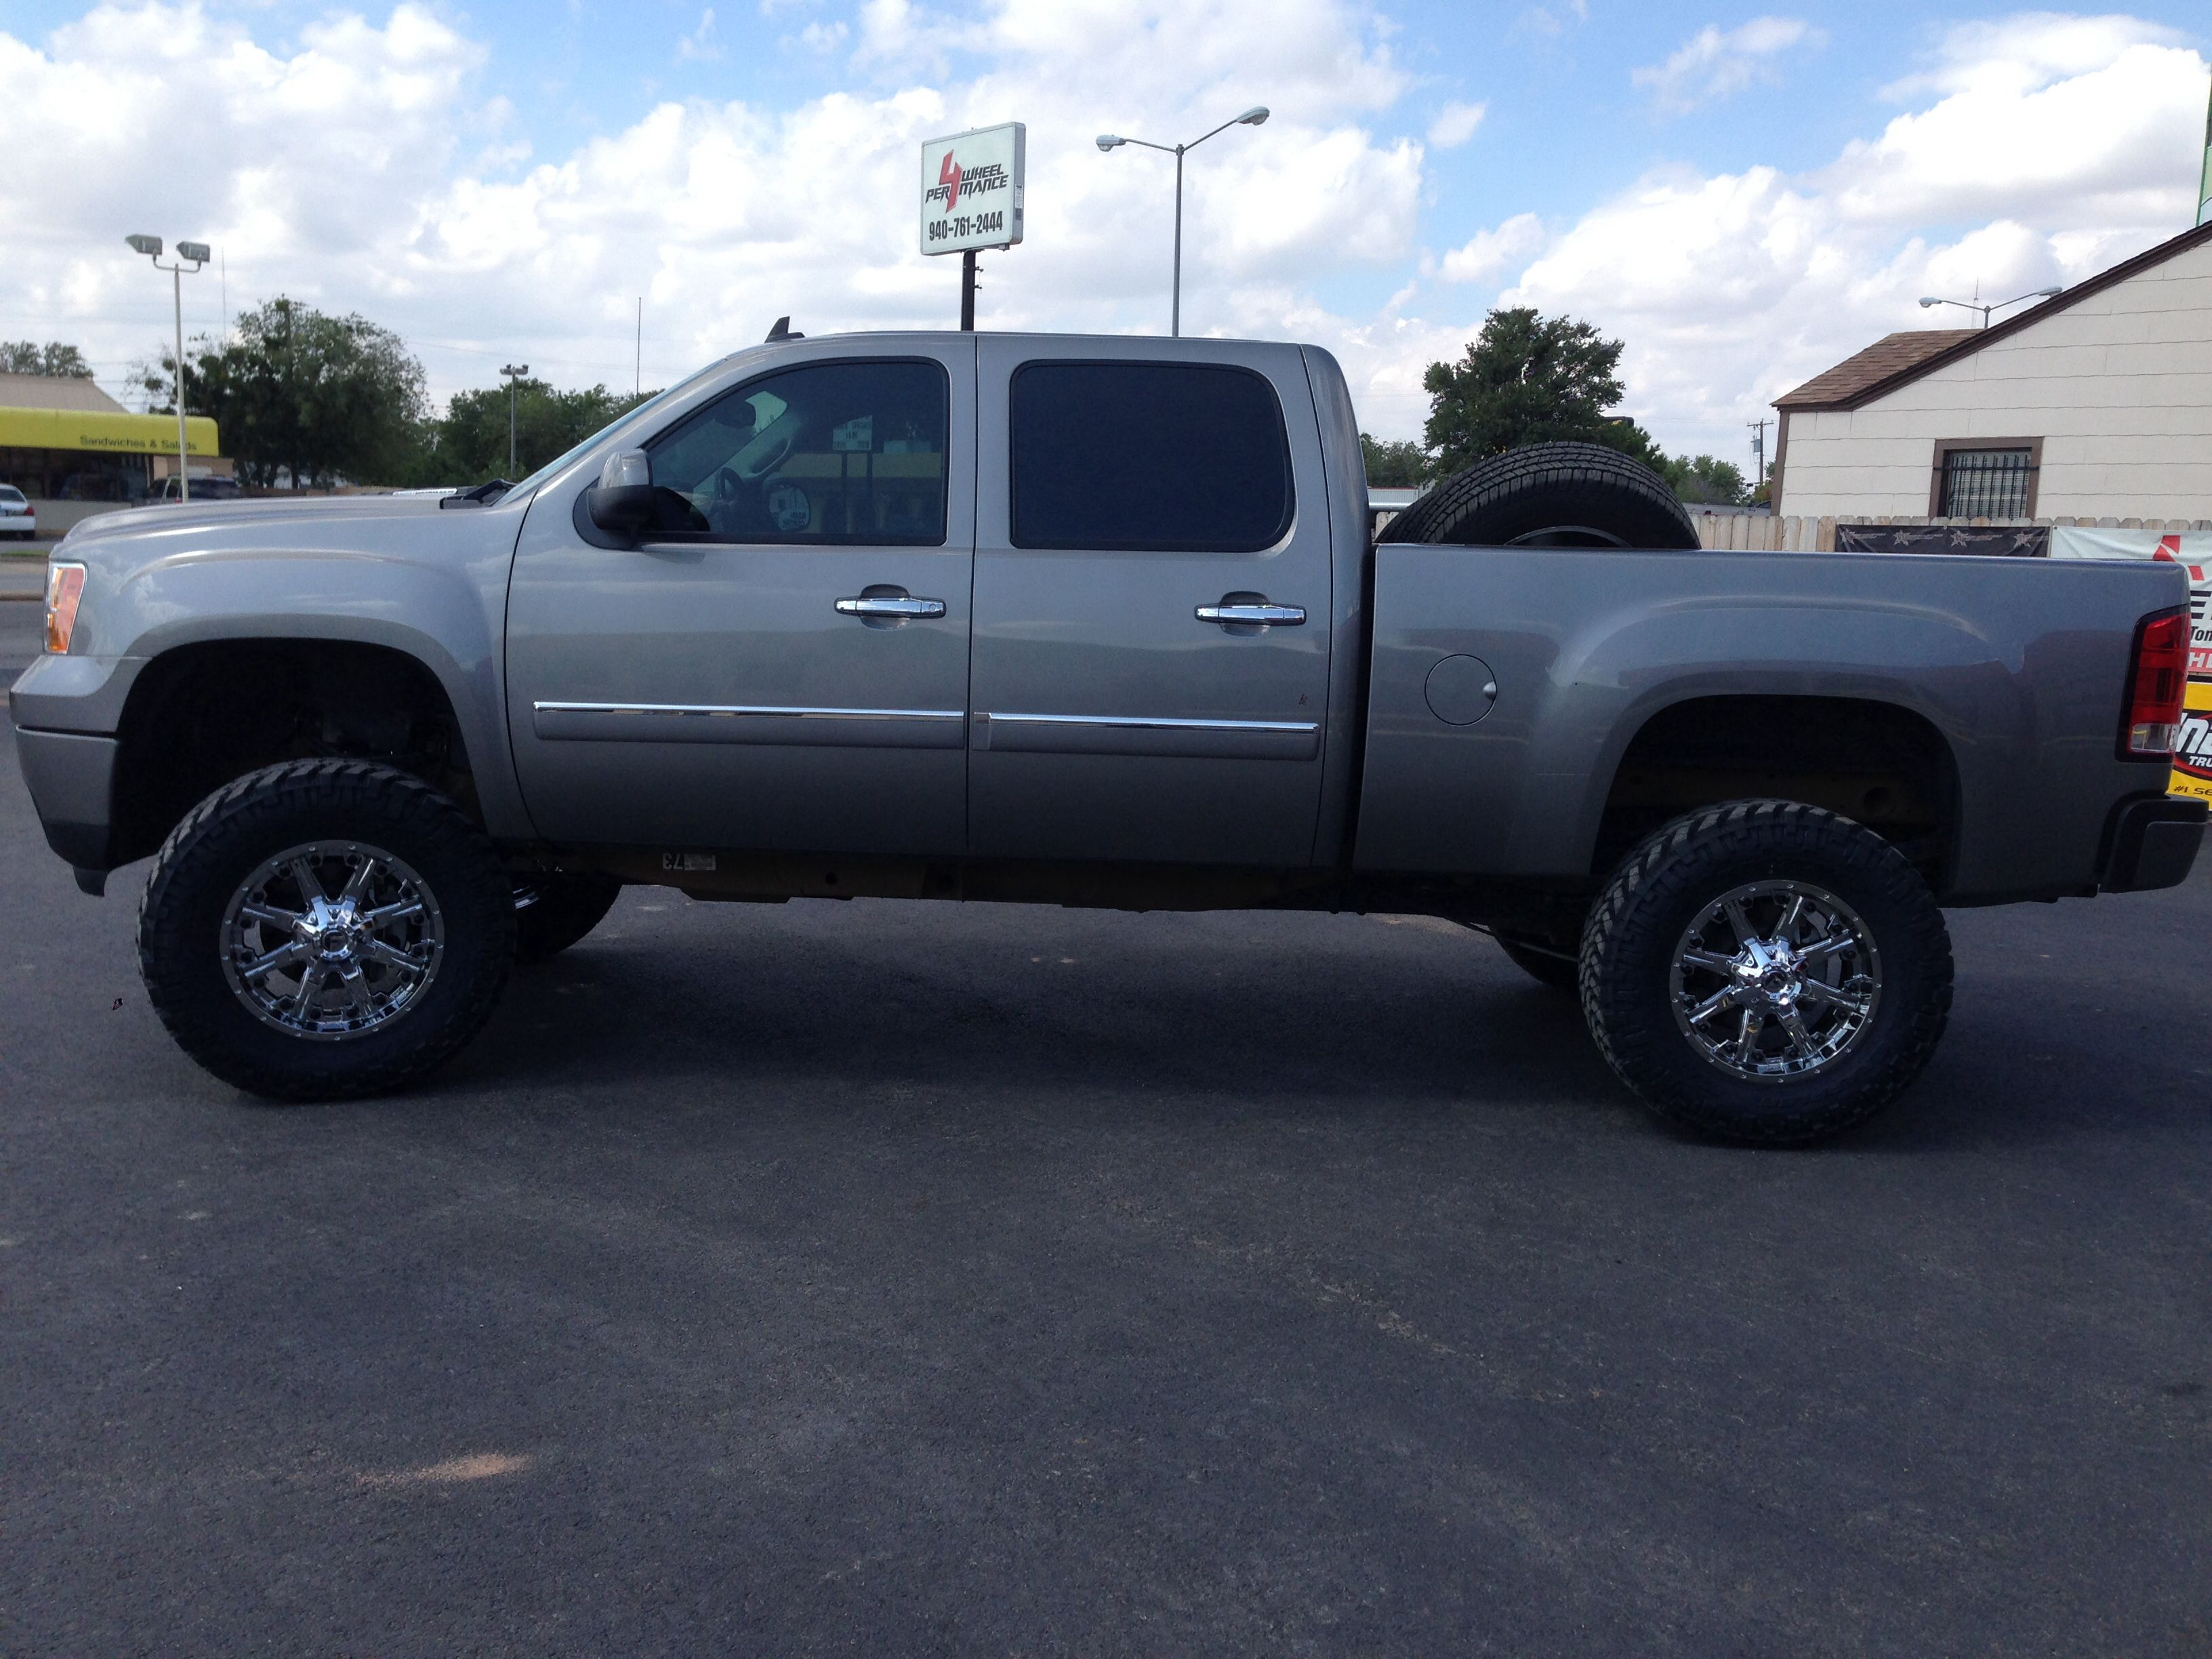 2013 gmc sierra 2500 hd 6 5 bds lift 20 fuel wheels 37x12 50r20 truck wheels